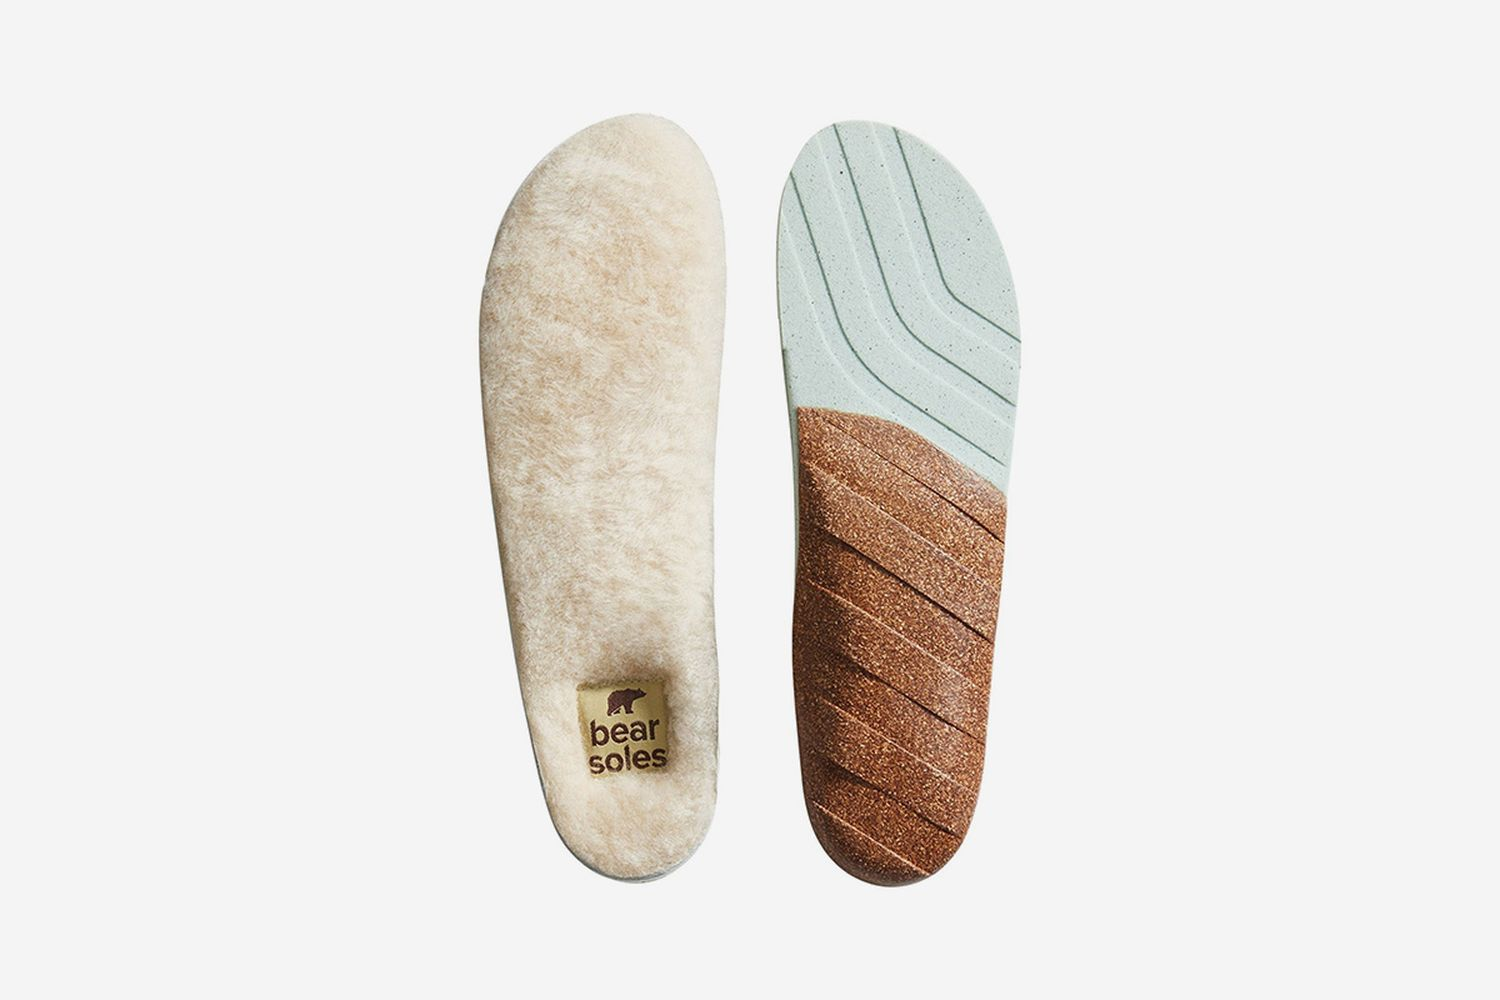 Sheep Skin Insoles